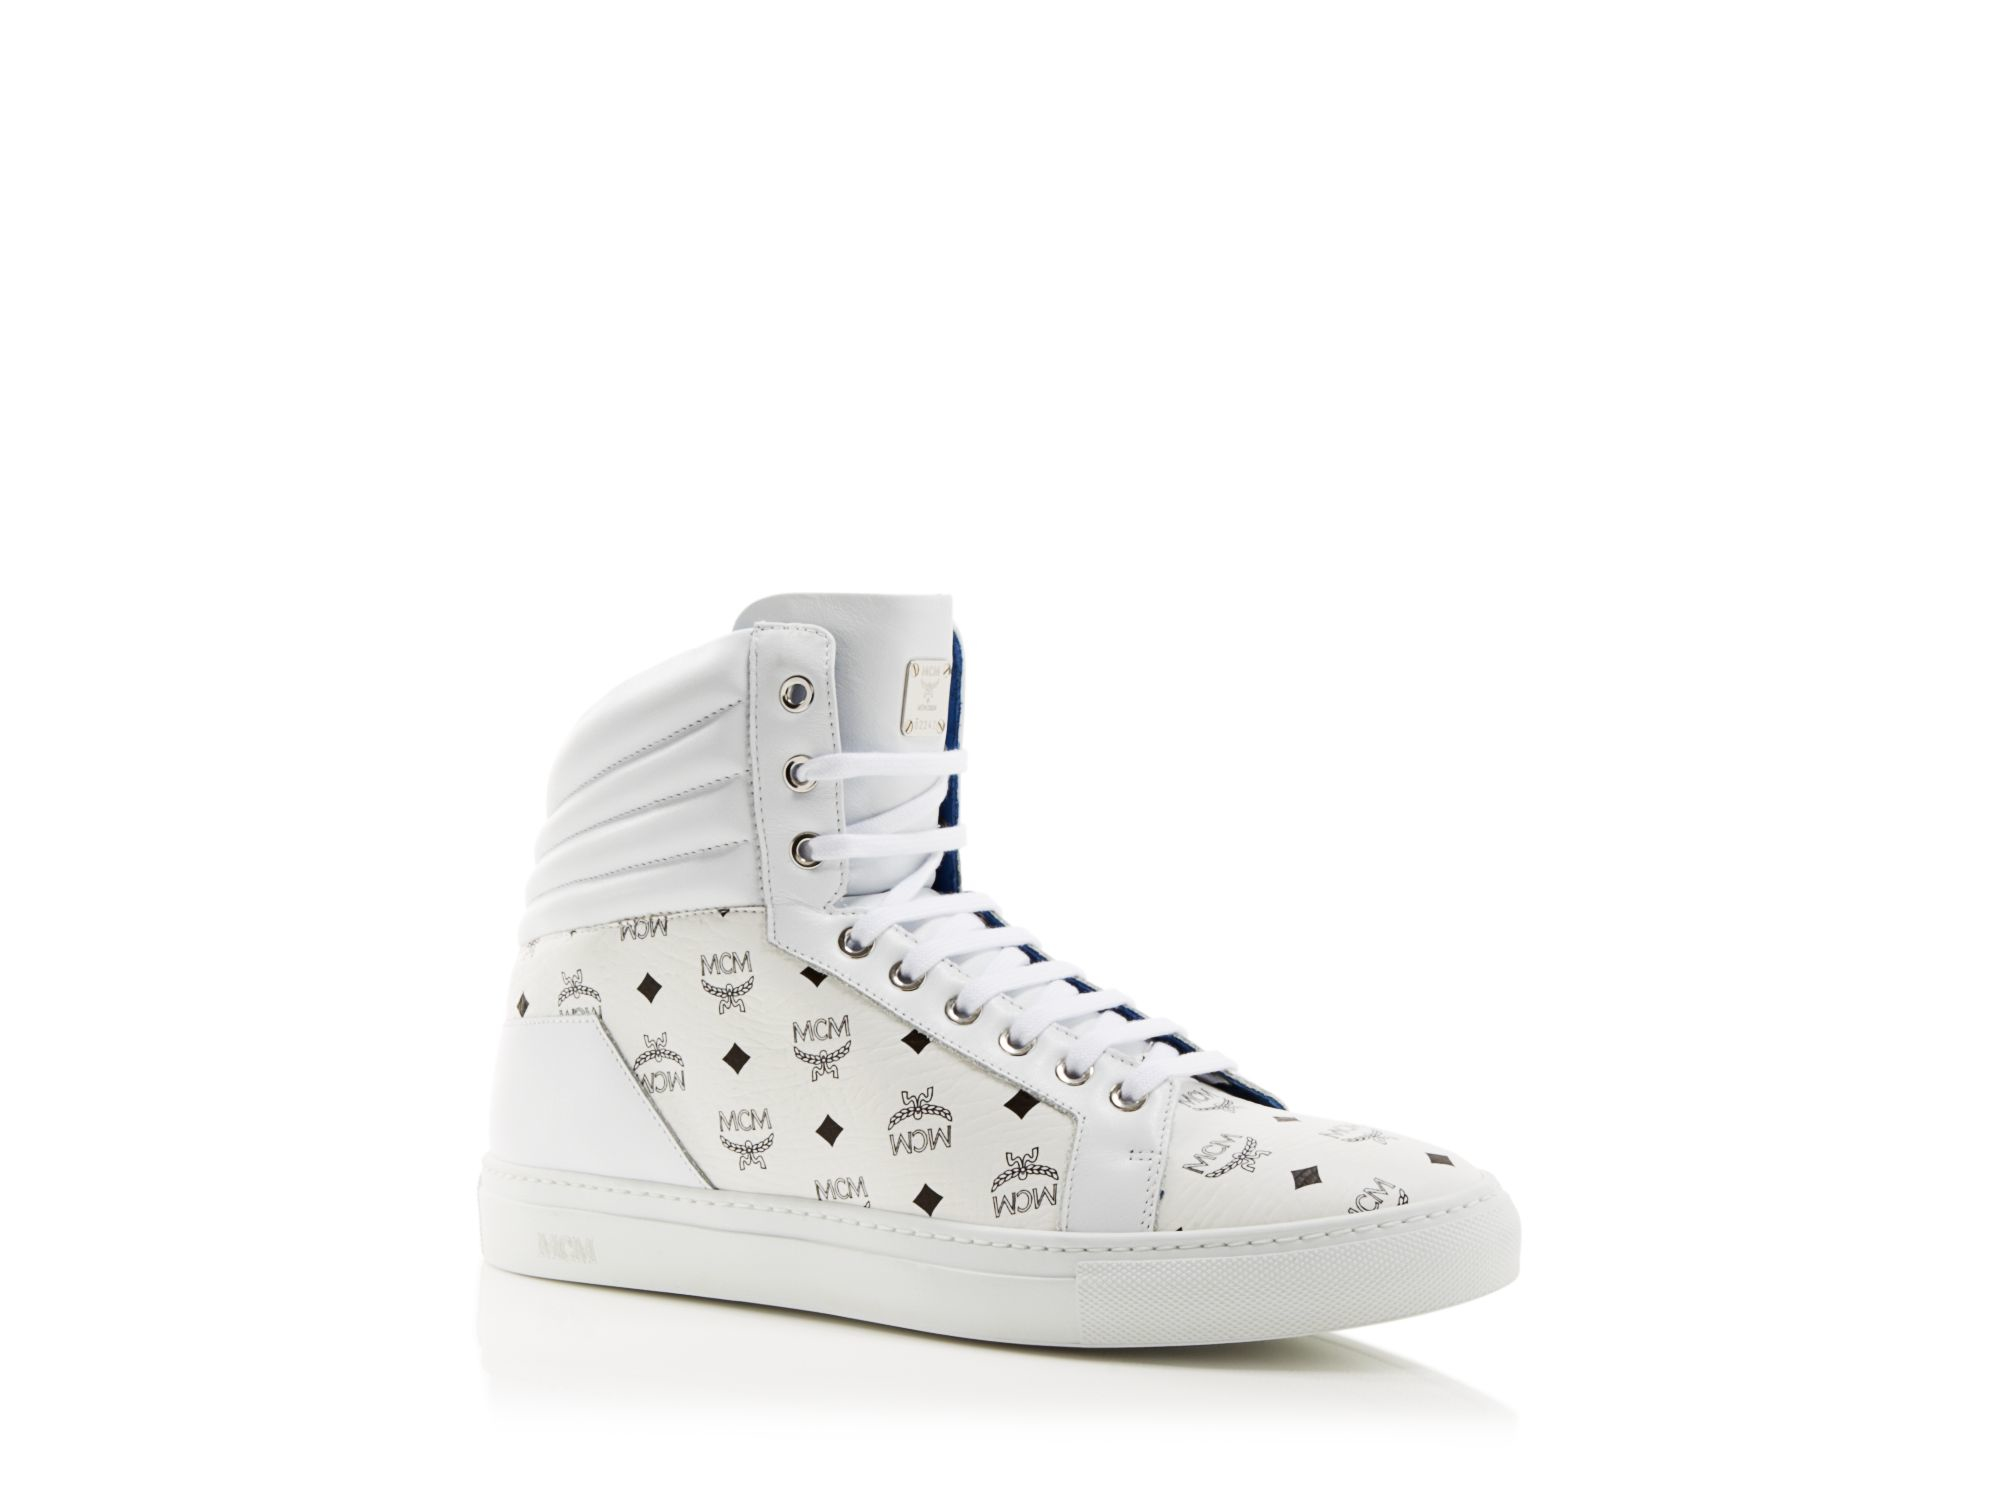 Carryover White Sneakers Men's Top High 6f7gvYby